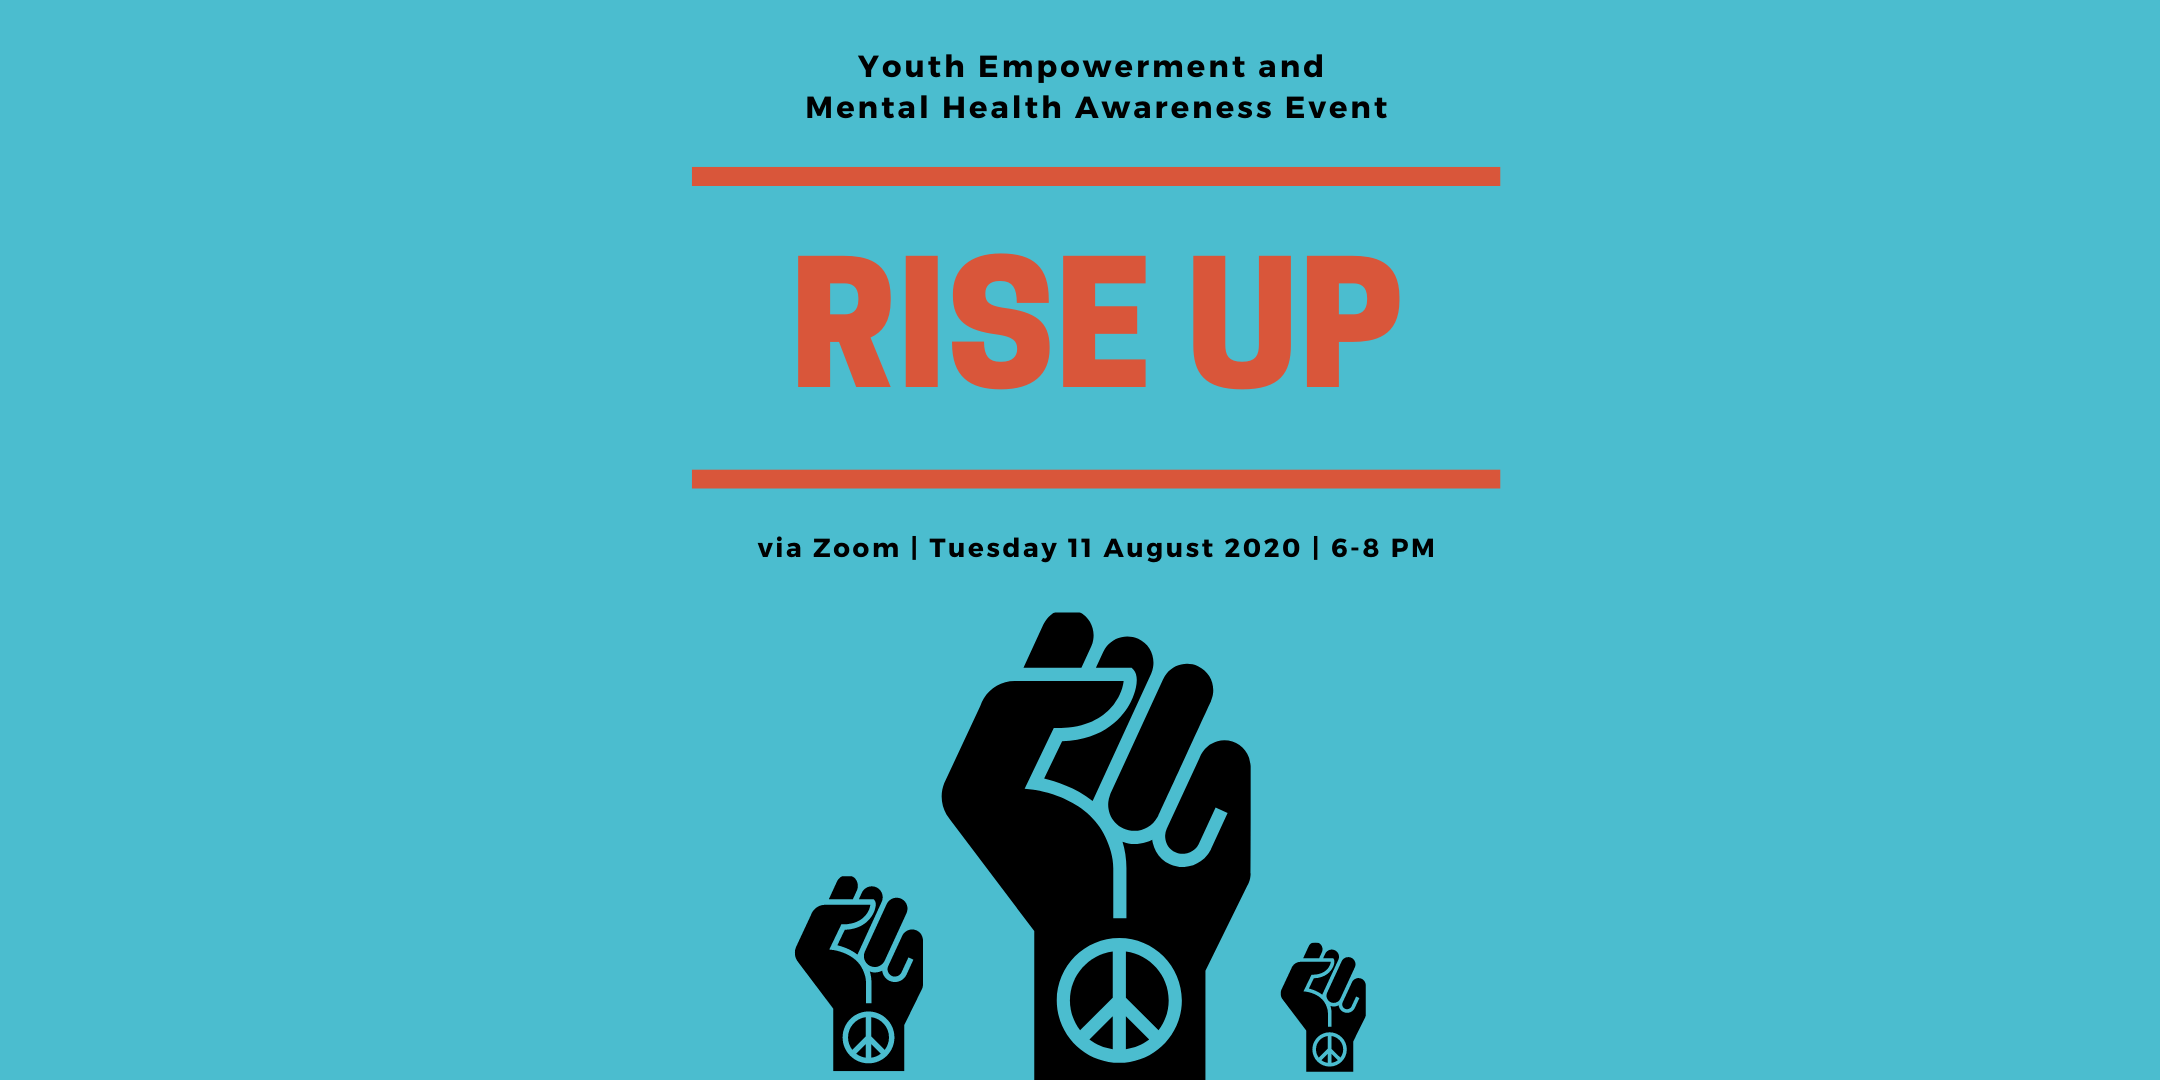 RISE UP: Youth Empowerment and Mental Health Awareness Event